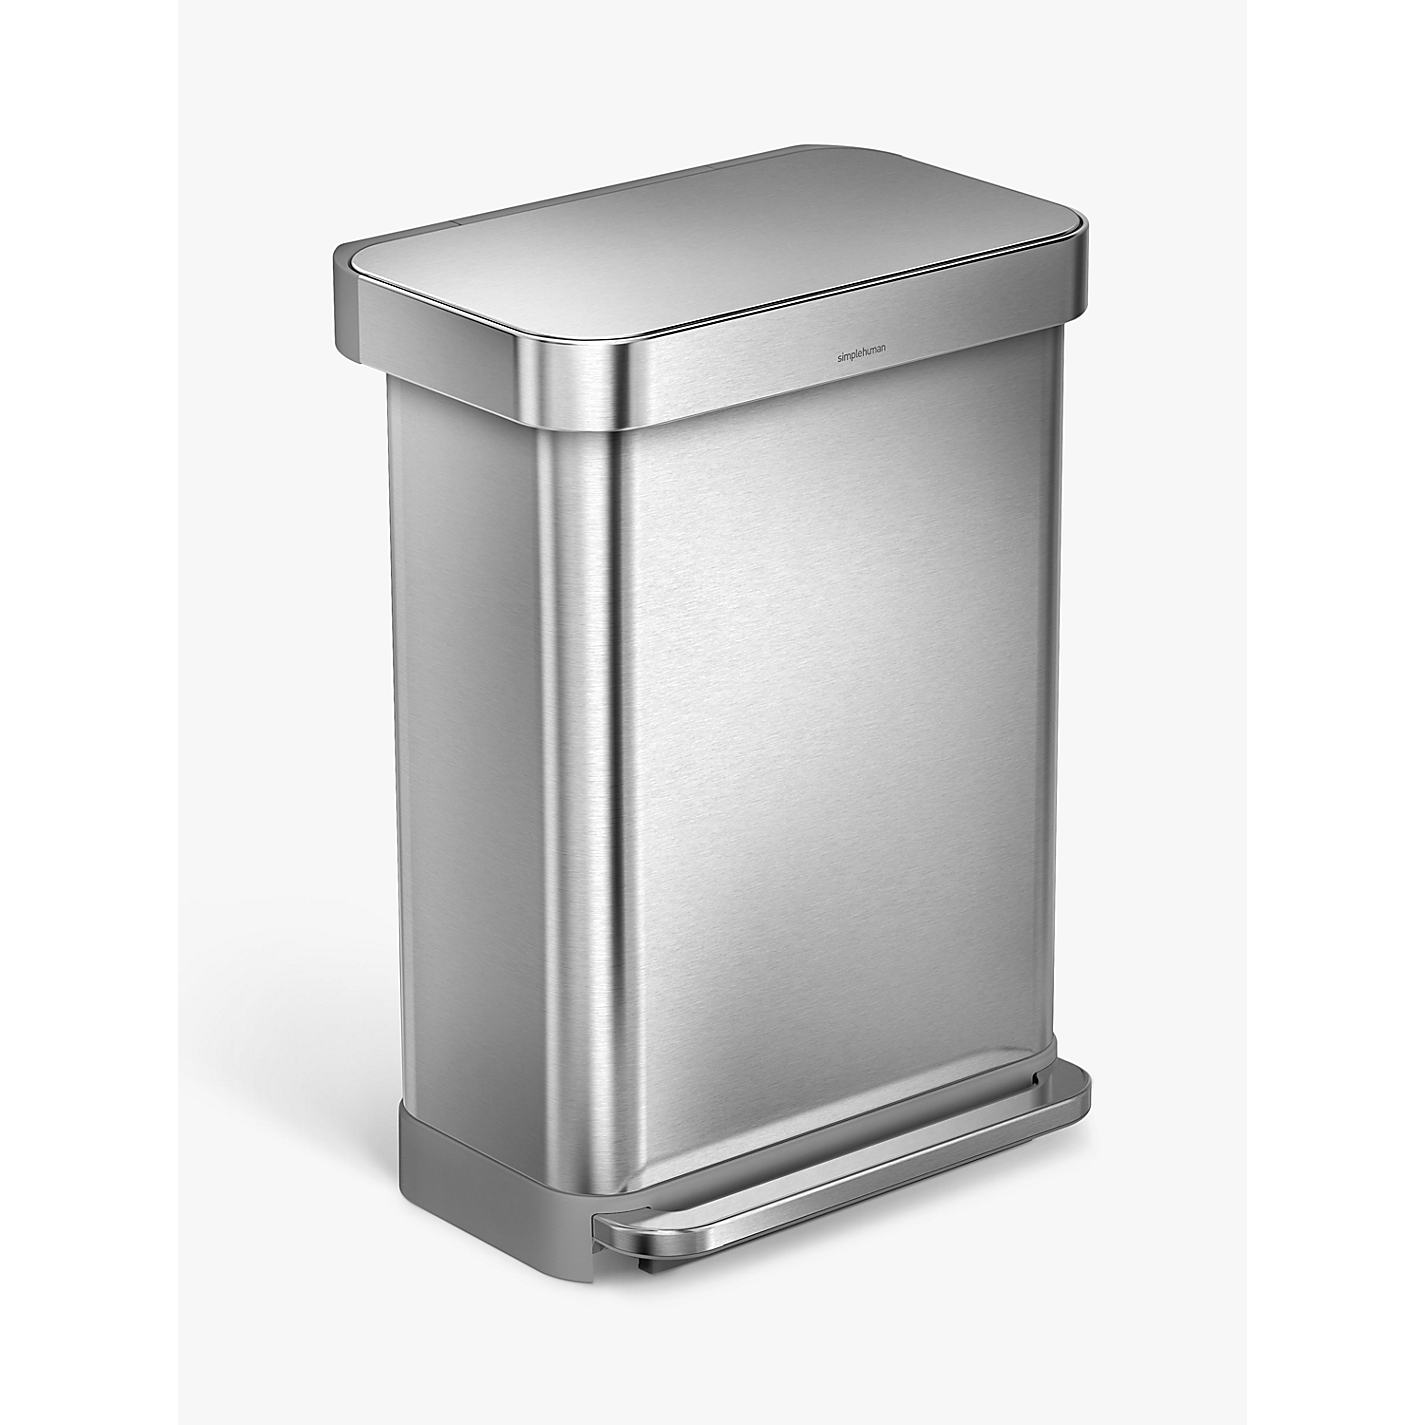 Buy simplehuman Liner Pocket Pedal Bin Brushed Steel John Lewis. Simplehuman Bathroom Bin